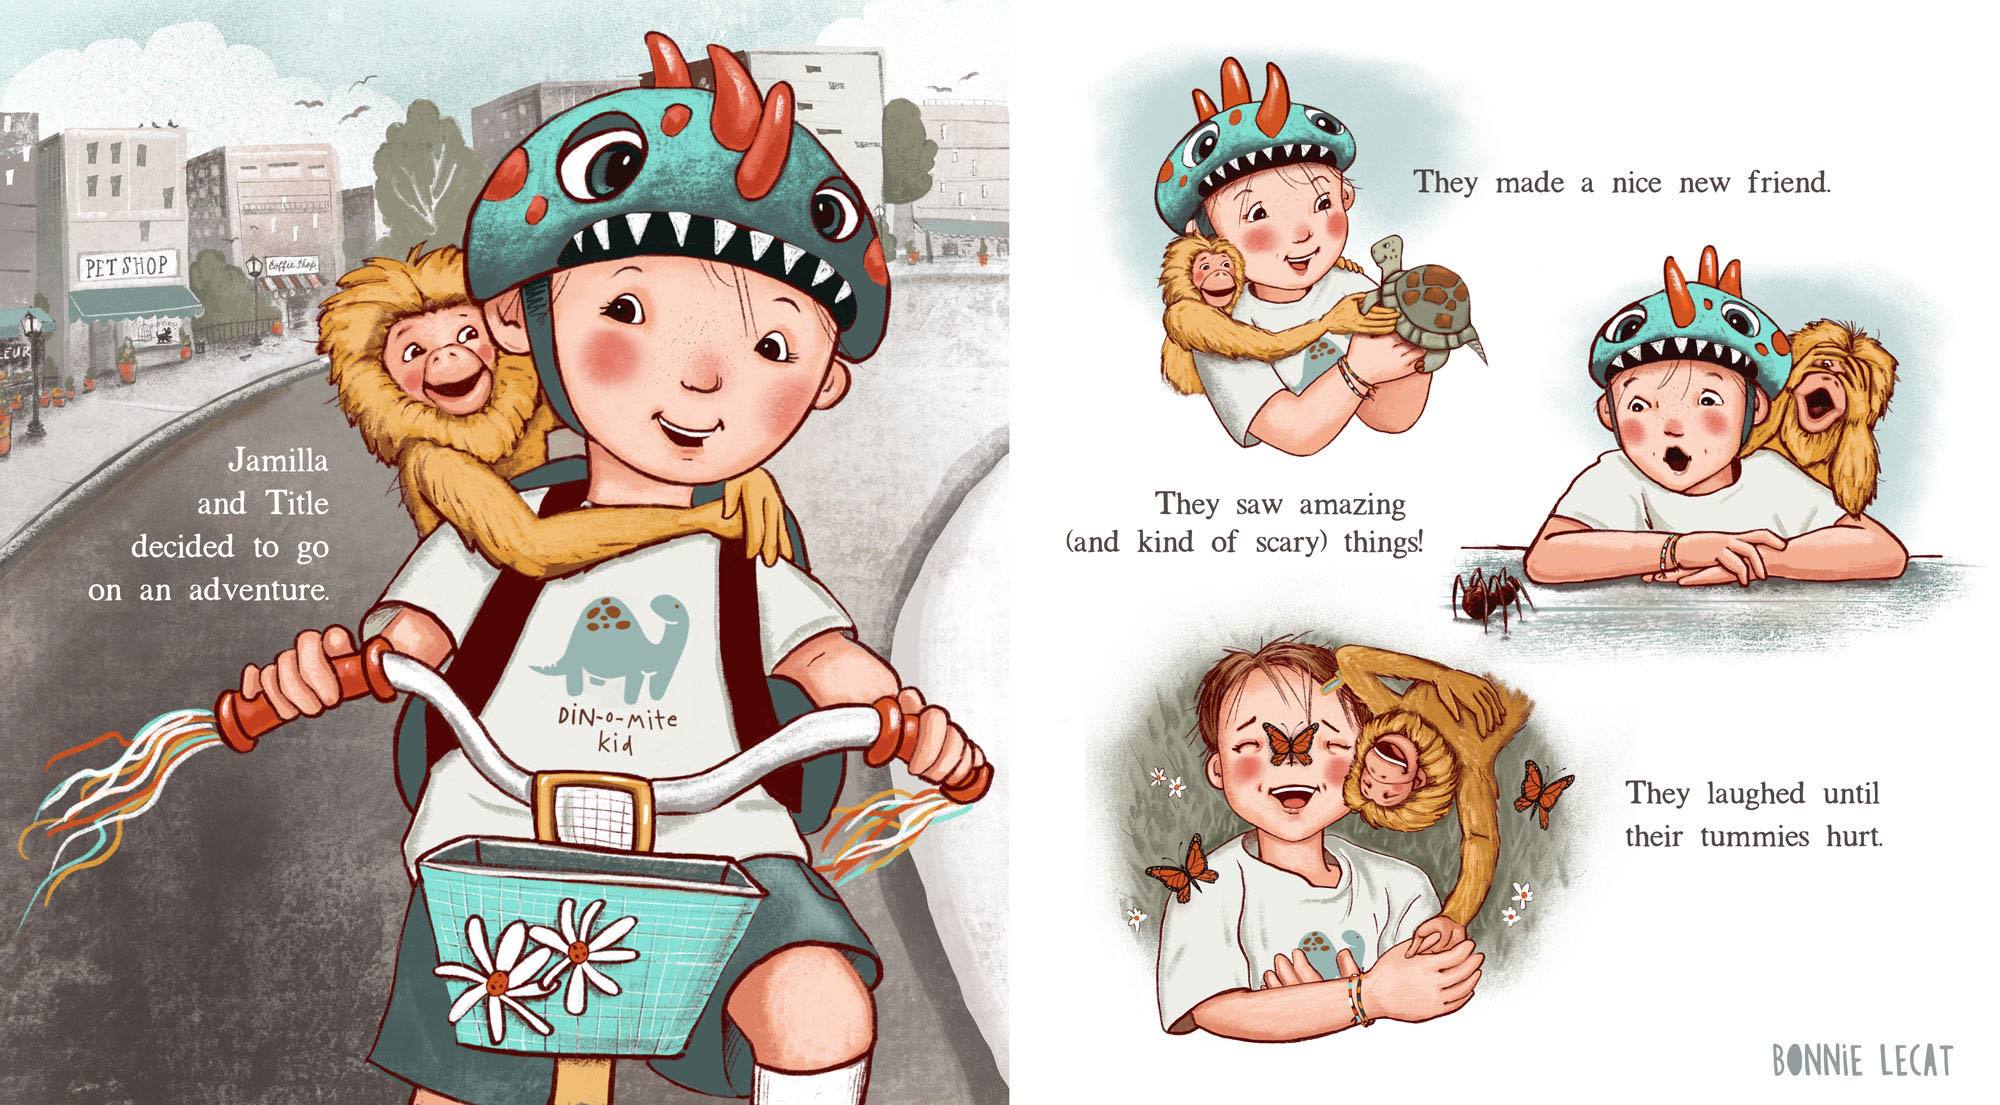 Children's Book illustration by Bonnie Lecat